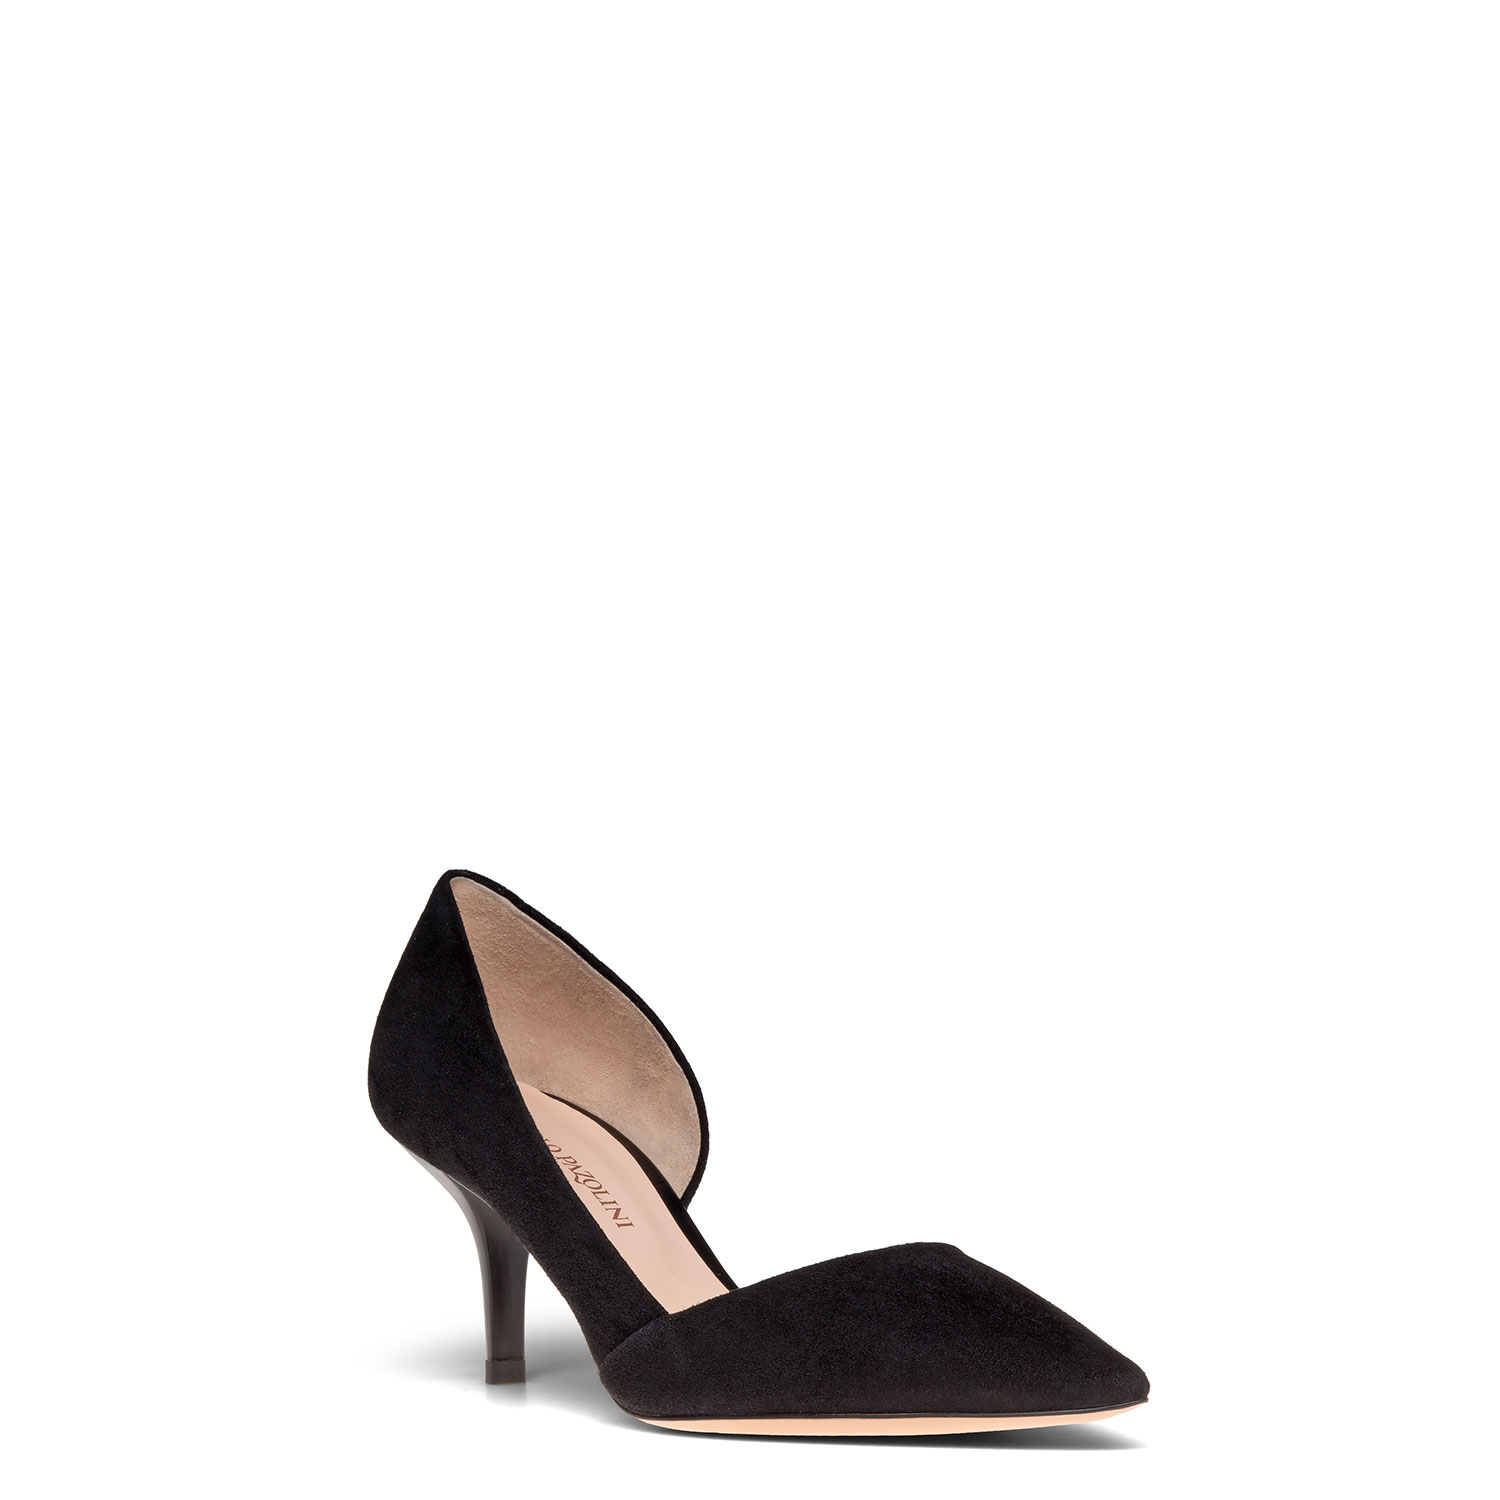 Women's shoes CARLO PAZOLINI FL-AEA2-1